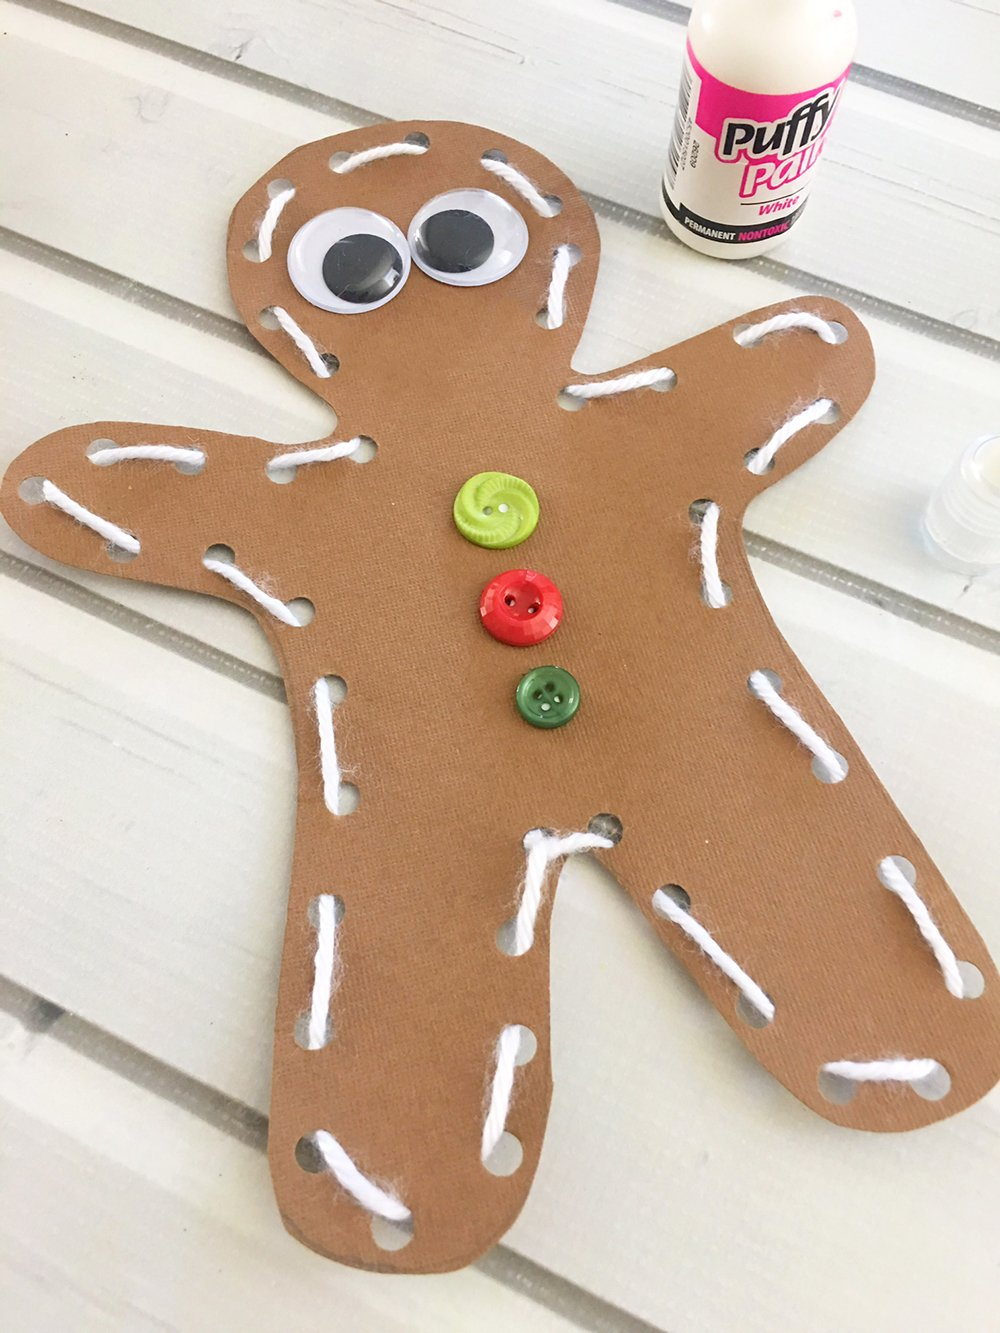 DIY Gingerbread Man Ornaments are an easy and fun holiday activity that will keep the little ones busy for hours! Use as tree ornamnets, gift tags or holiday dinner placecards-Glue two googly eyes onto the face of the gingerbread man and three buttons onto the chest.